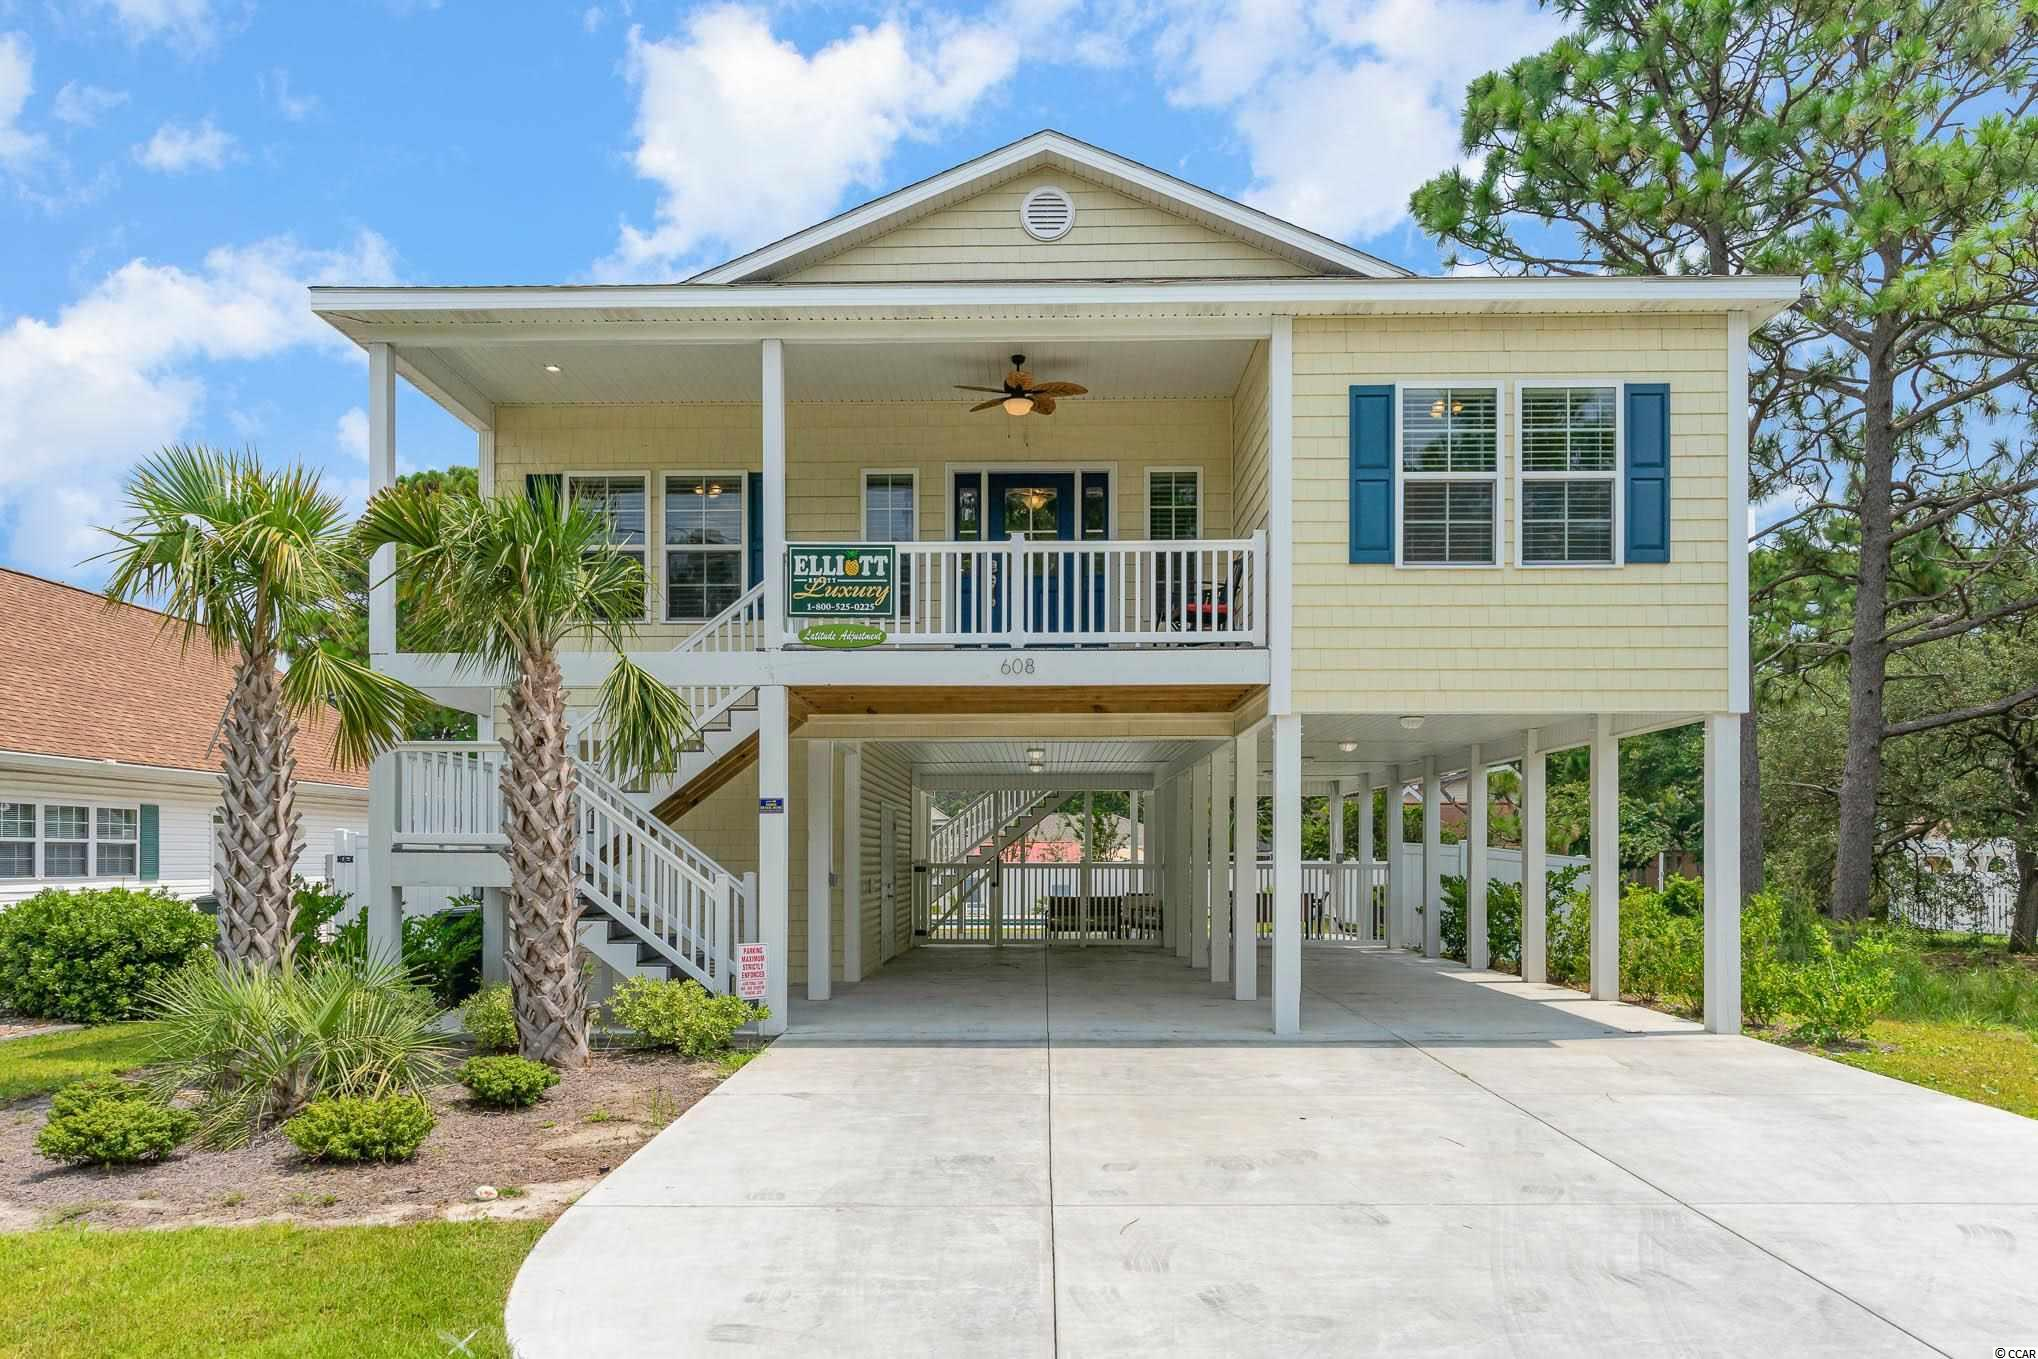 This stunning raised beach house in North Myrtle Beach with NO HOA will not last long! Property has 9 & 10 Ft ceilings and crown molding throughout, granite countertops and even an inground heated pool in the back yard! Property is only 3 blocks to the Atlantic Ocean which makes for the perfect walk or golf cart ride to the beach. Located in close proximity to all attractions, restaurants and shopping that North Myrtle Beach has to offer. Call today for more information or to schedule a showing.